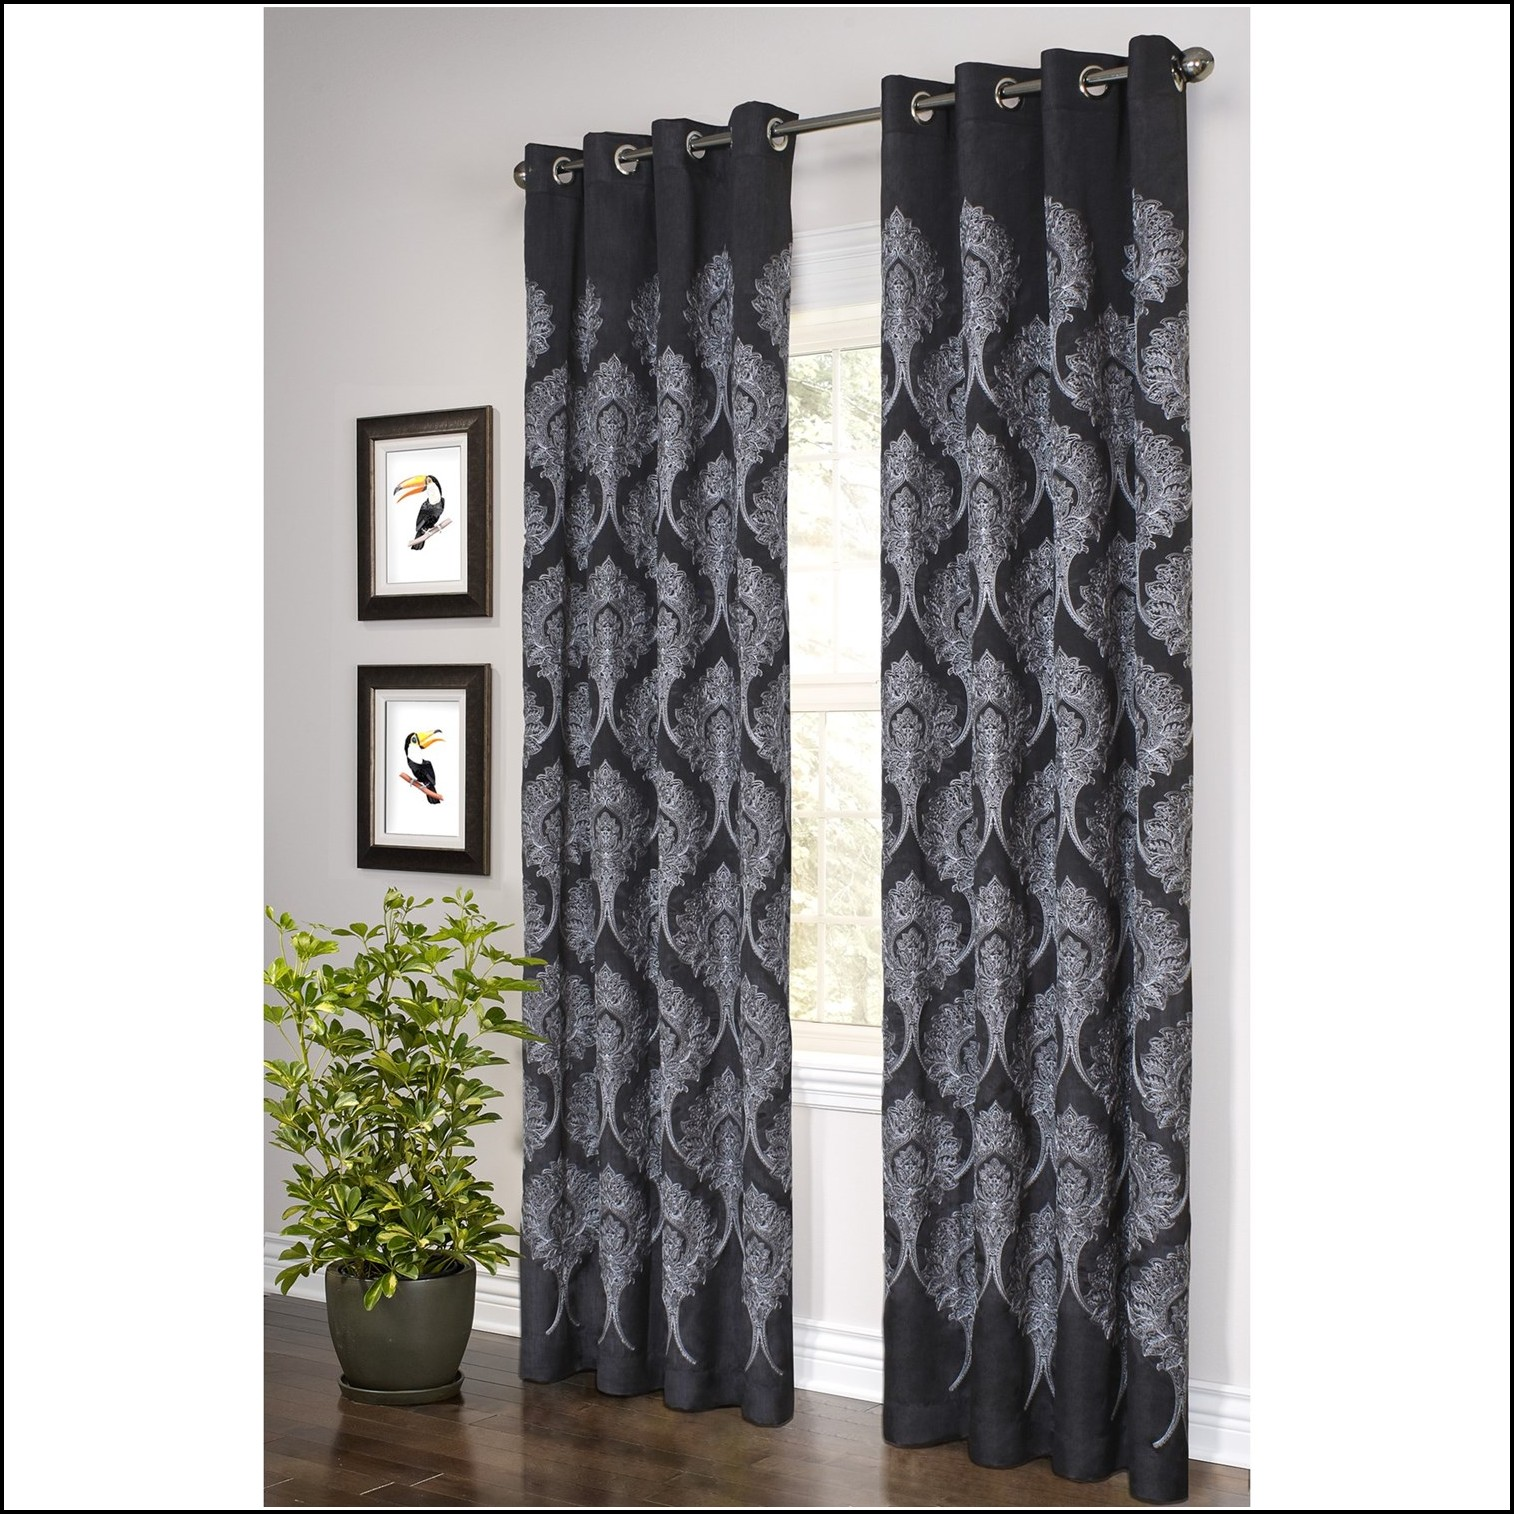 Black And White Curtains For Living Room Curtains Home Design Ideas 4rdbyo0ny229330